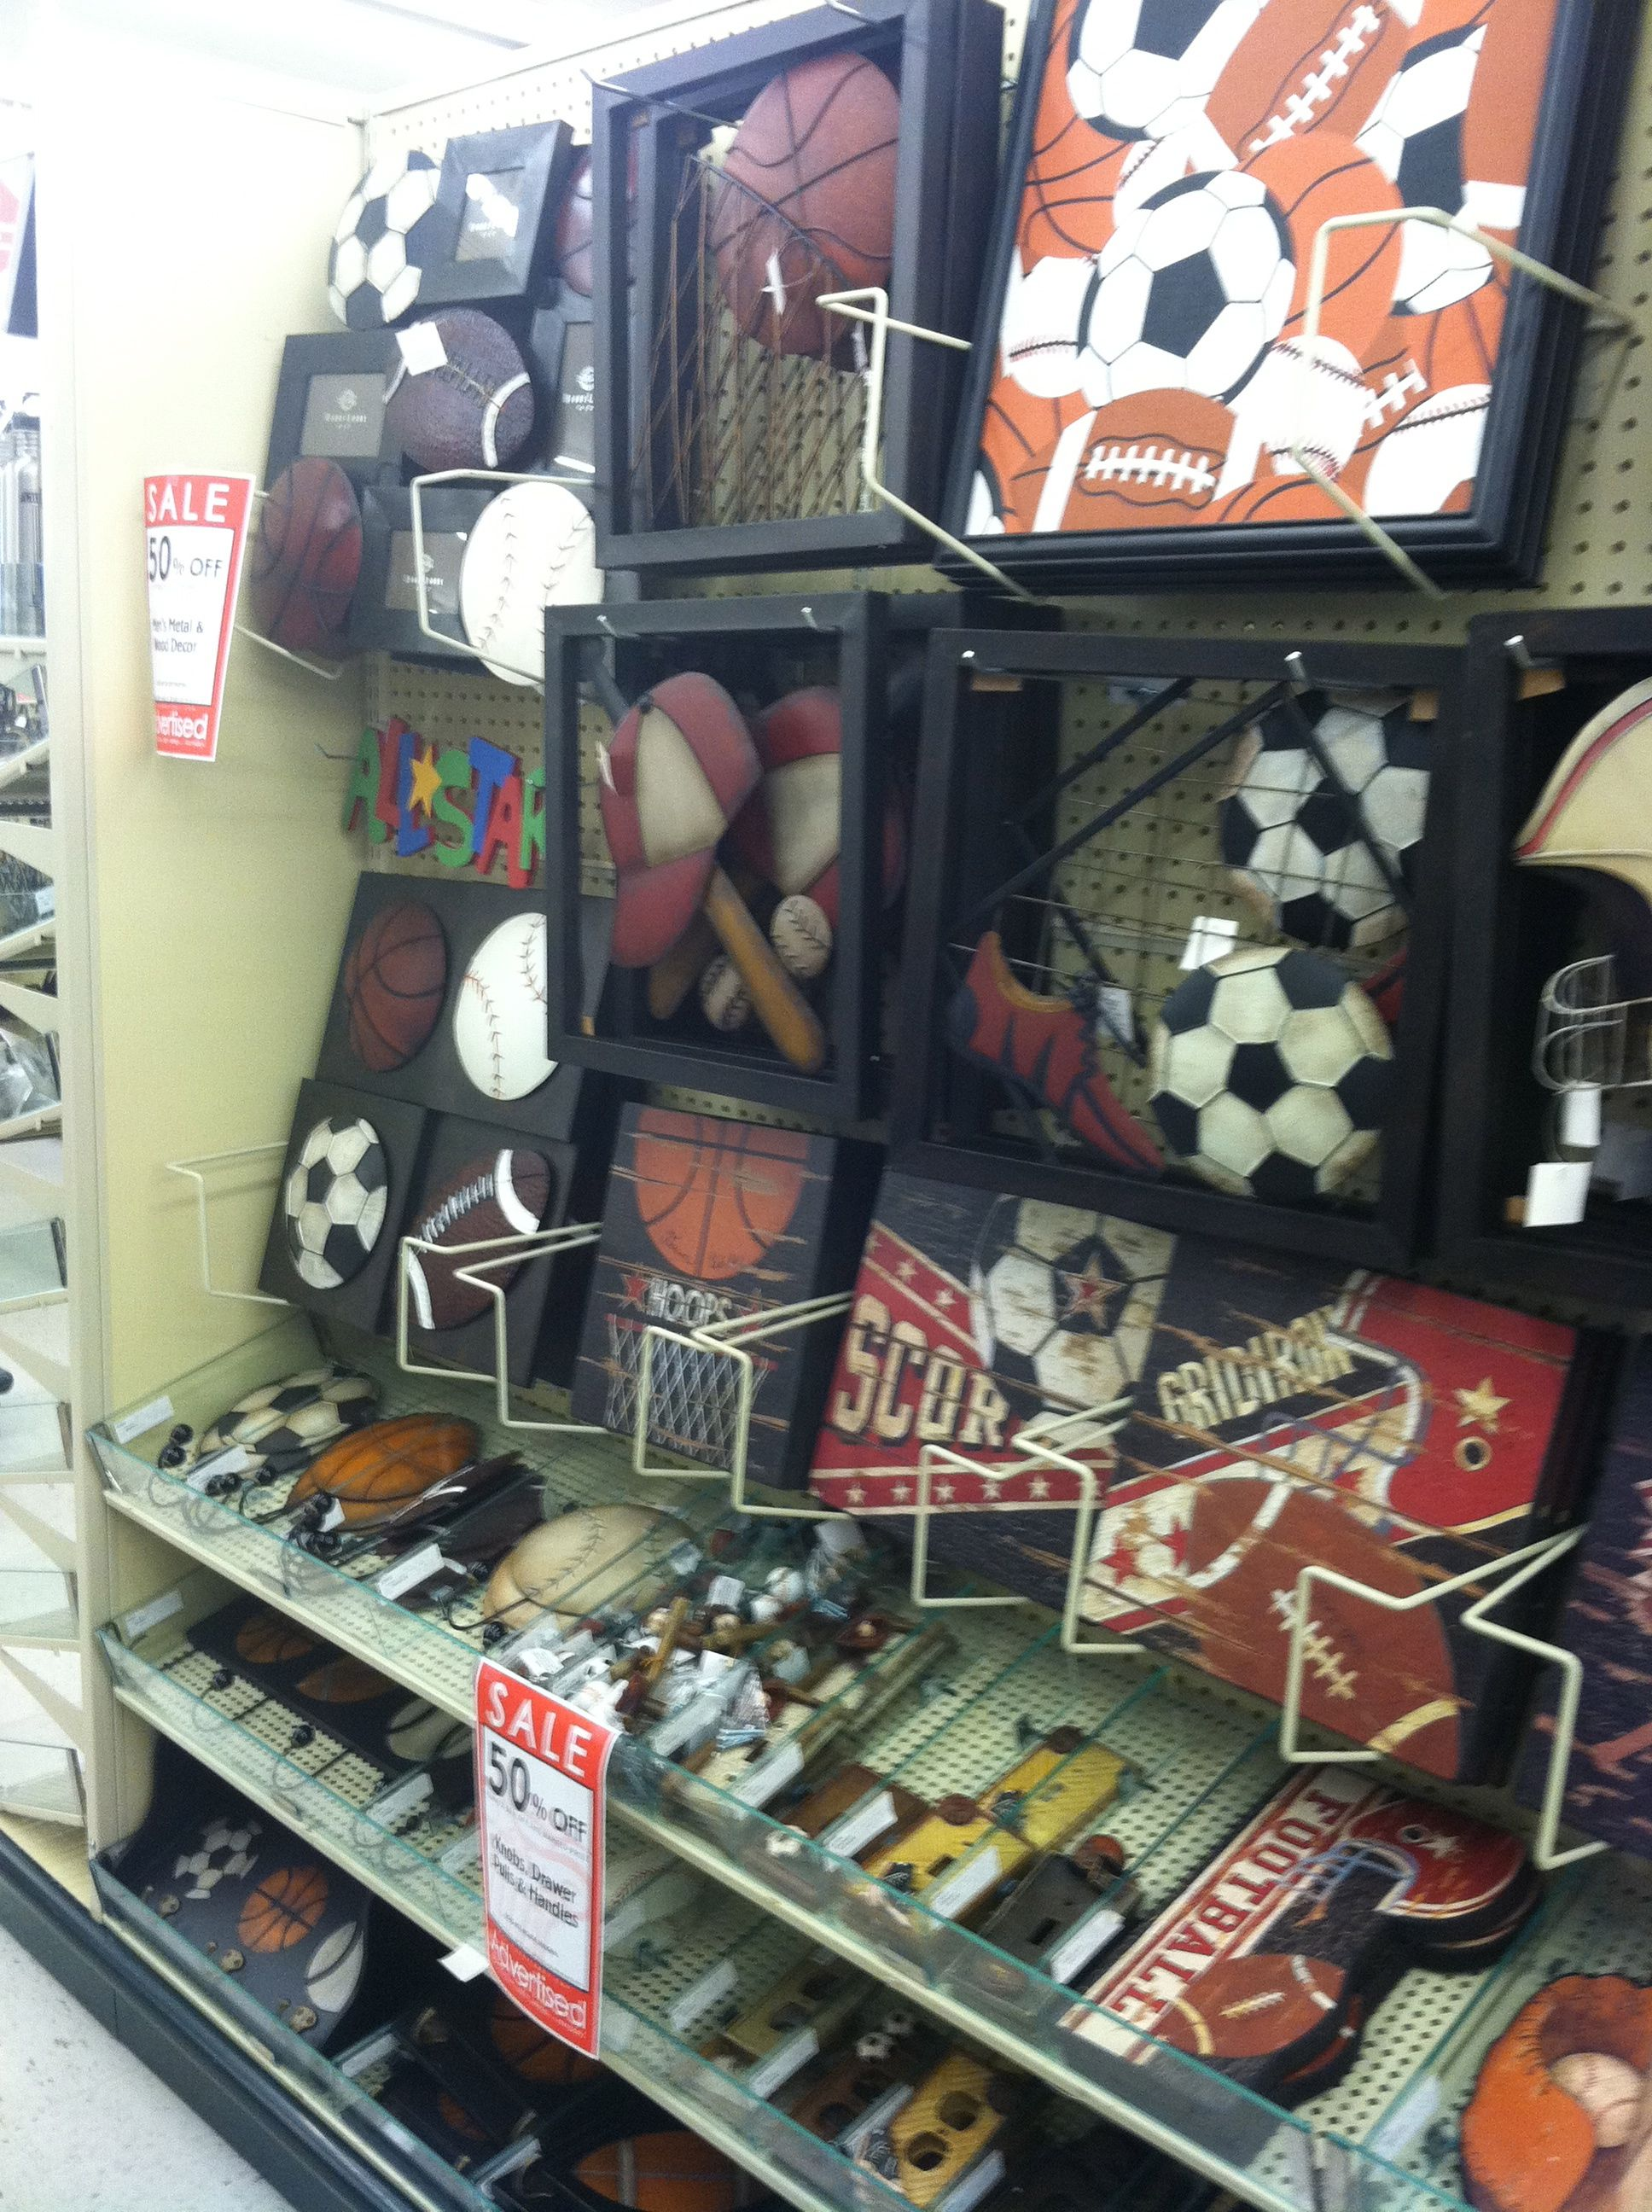 Guess Ill Be Checking Hobby Lobby !! Sport Decor From HobbyLobby For Boys  Bathroom